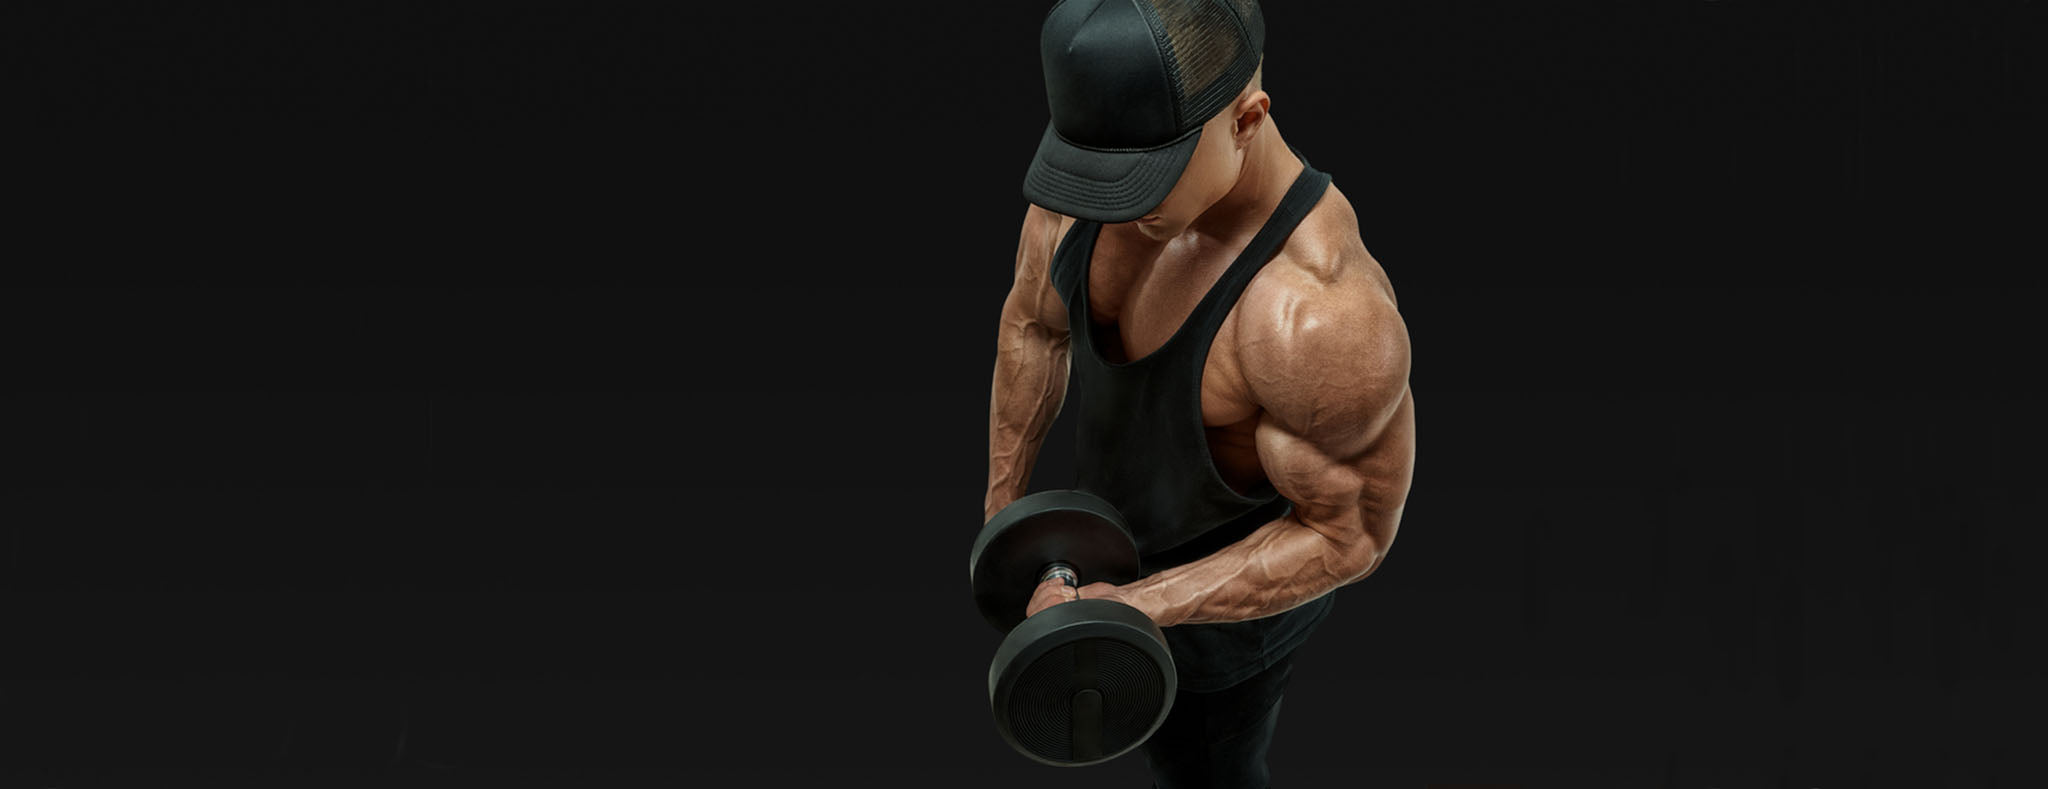 Doing Isolated or Compound Exercise Only